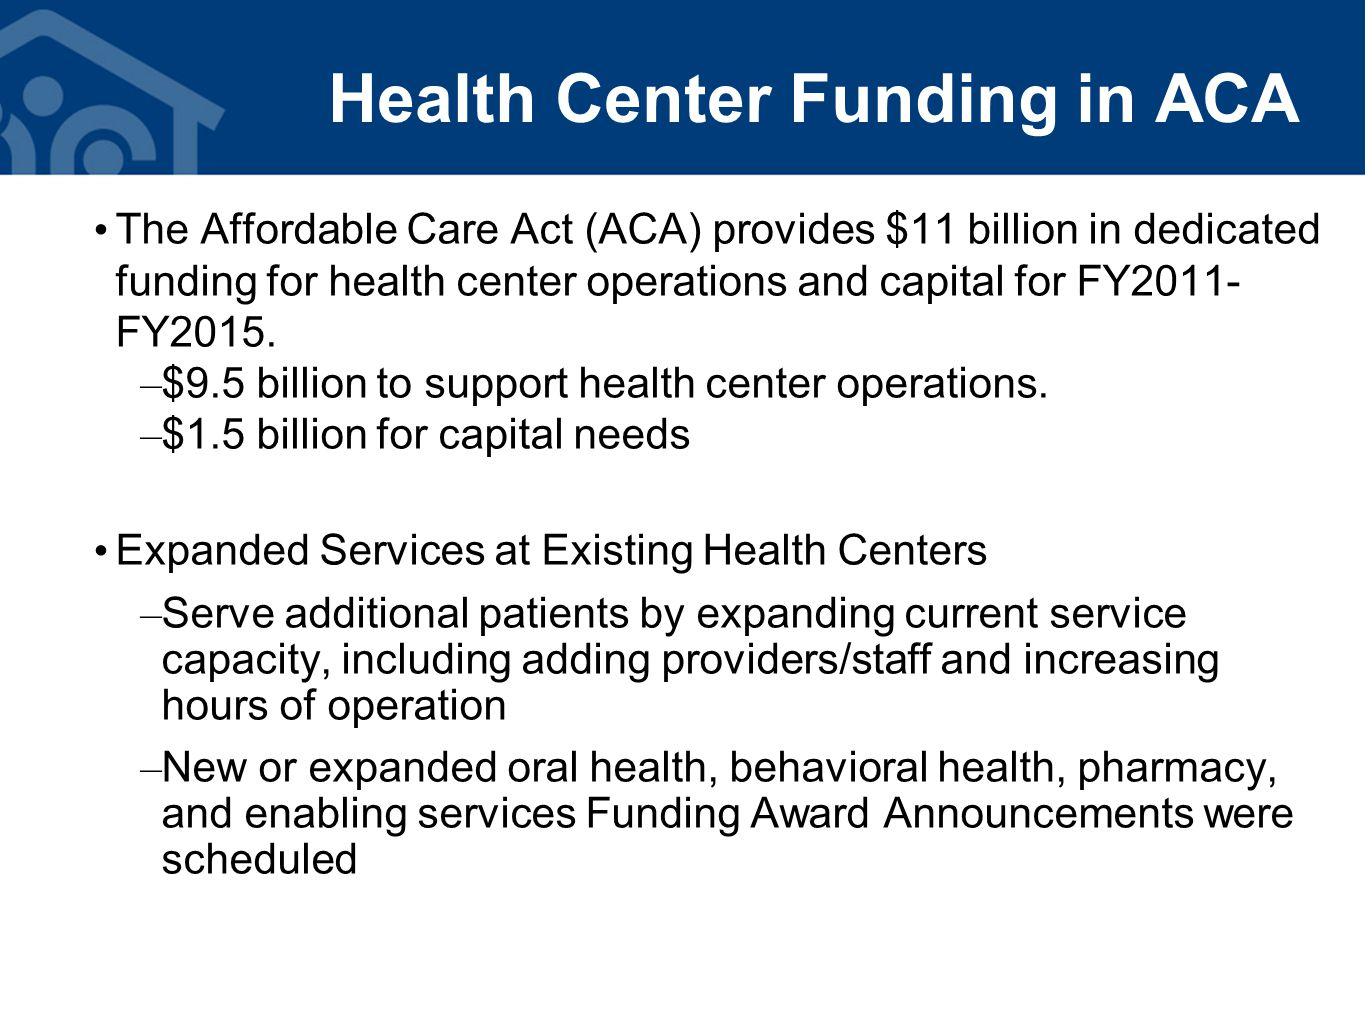 Health Center Funding in ACA The Affordable Care Act (ACA) provides $11 billion in dedicated funding for health center operations and capital for FY2011- FY2015.